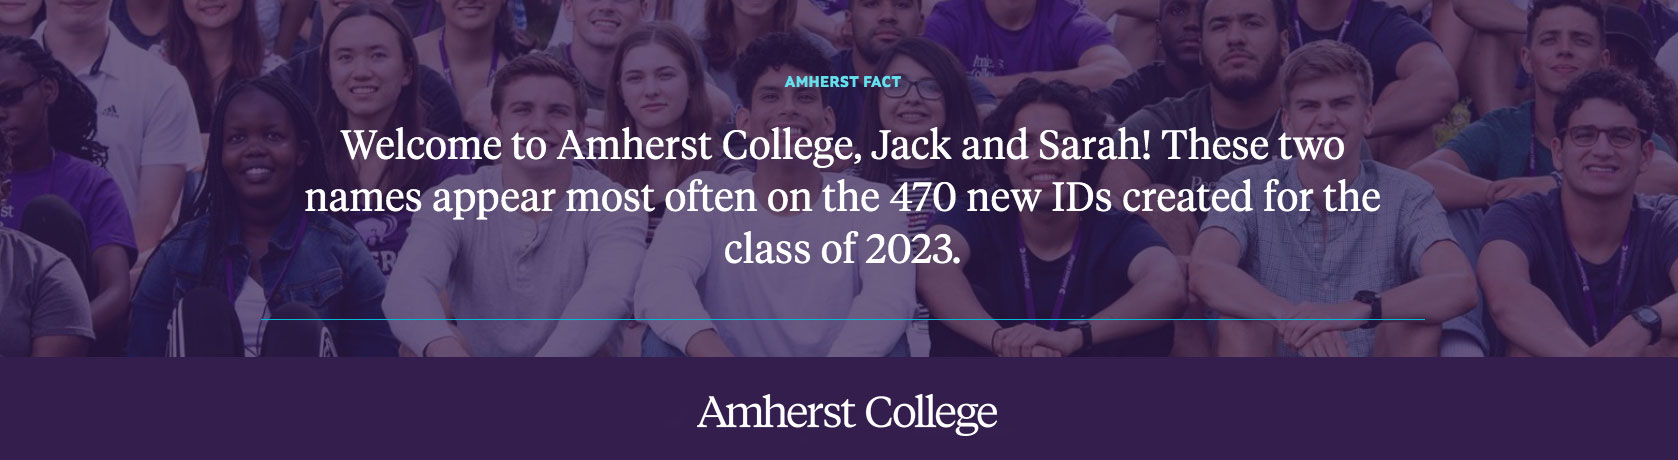 A fact about the incoming class of 2023, Amherst College